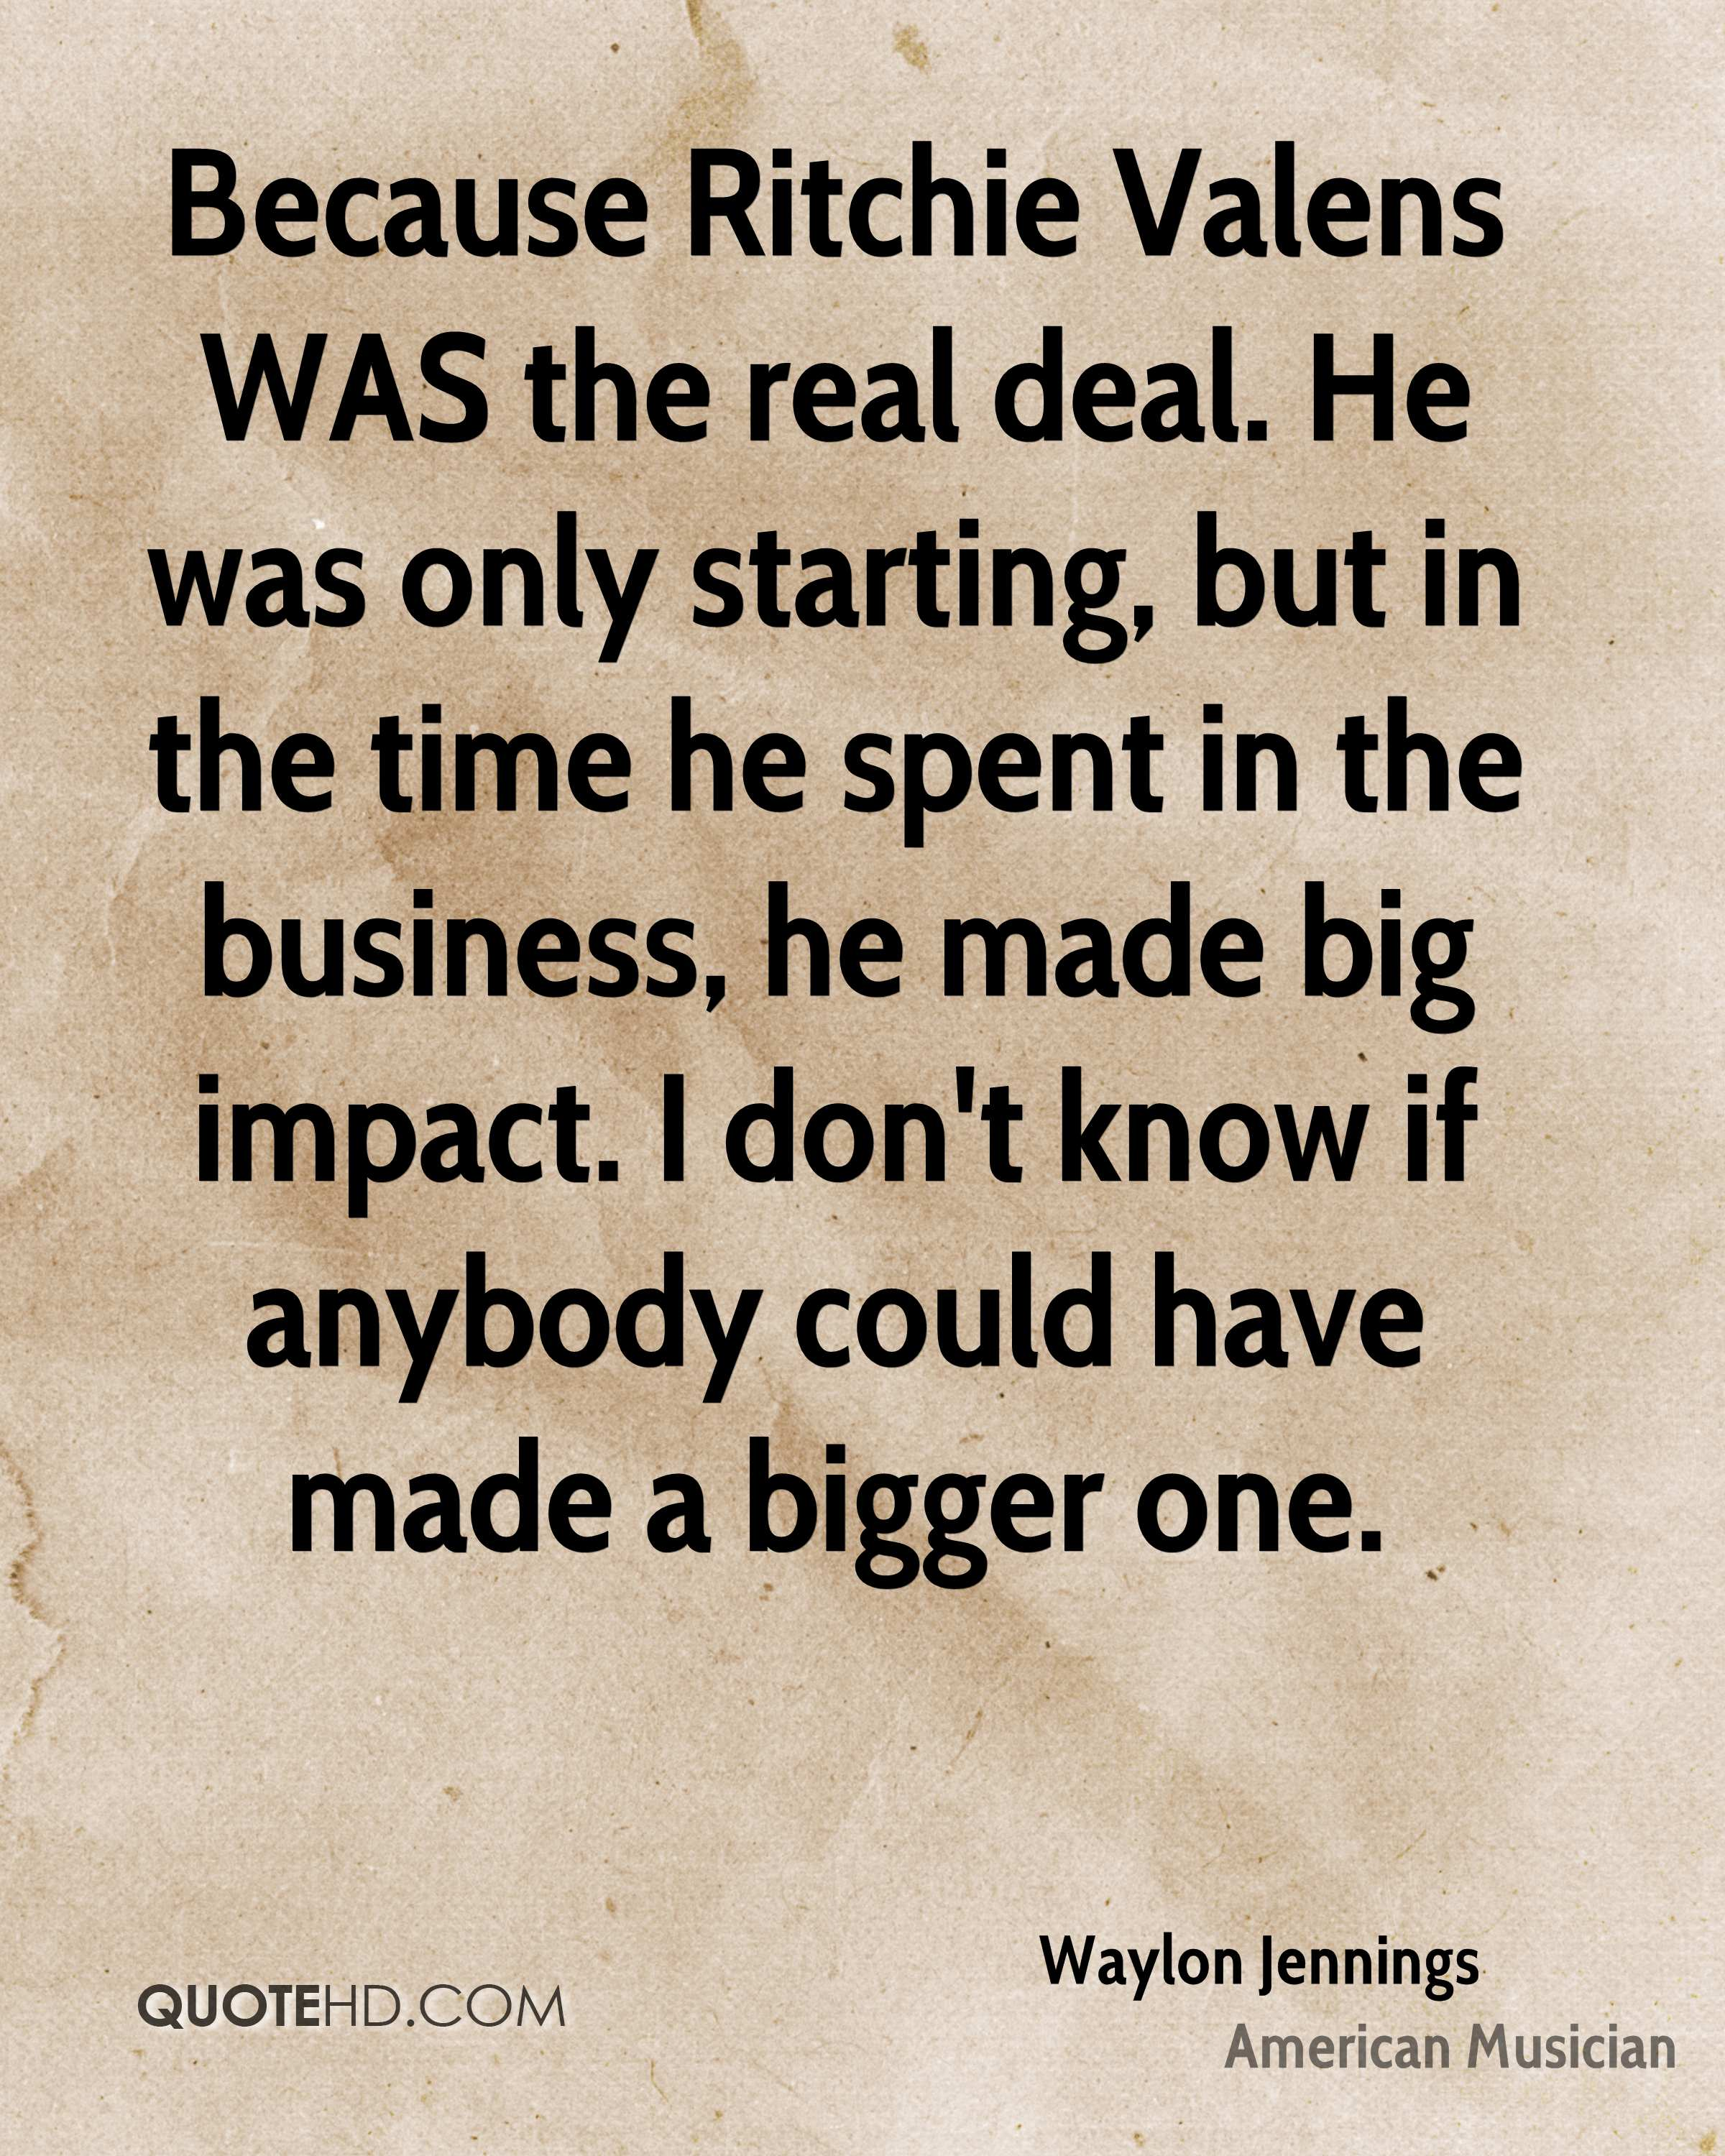 Because Ritchie Valens WAS the real deal. He was only starting, but in the time he spent in the business, he made big impact. I don't know if anybody could have made a bigger one.